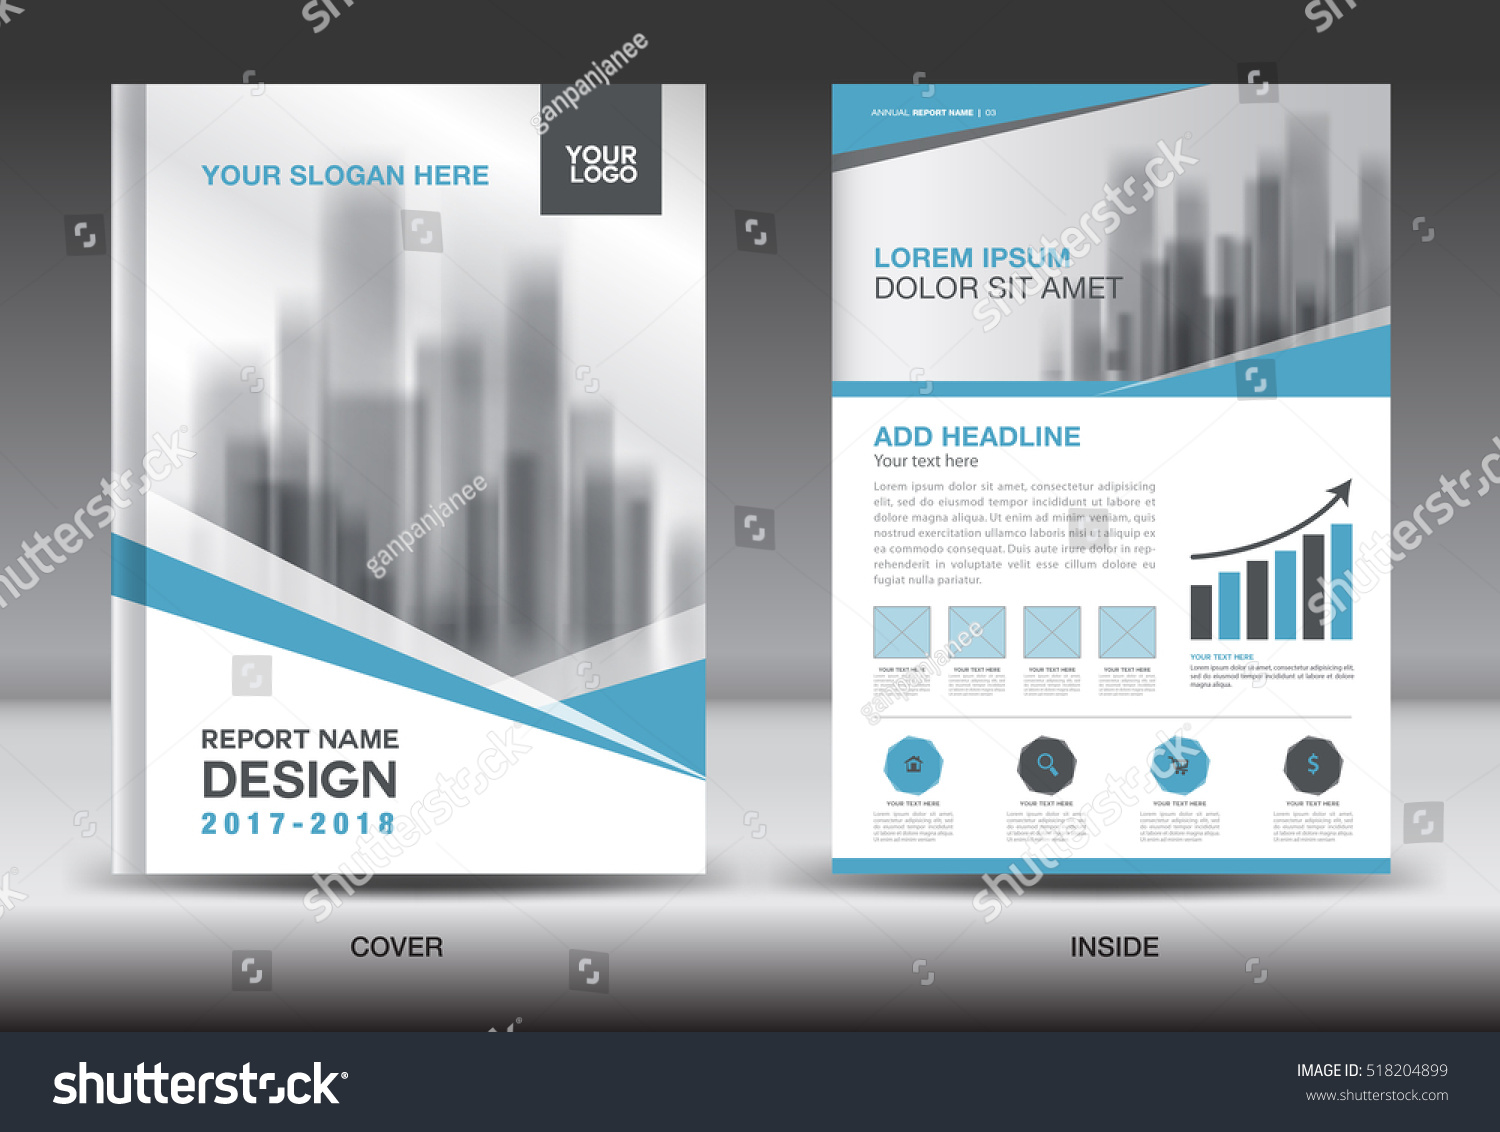 Wonderful 10 Best Resumes Thin 10 Label Template Round 1099 Form Template 13b Porting Templates Young 16 Team Bracket Template Dark1st Birthday Invite Templates Blue Cover Annual Report Brochure Flyer Stock Vector 518204899 ..